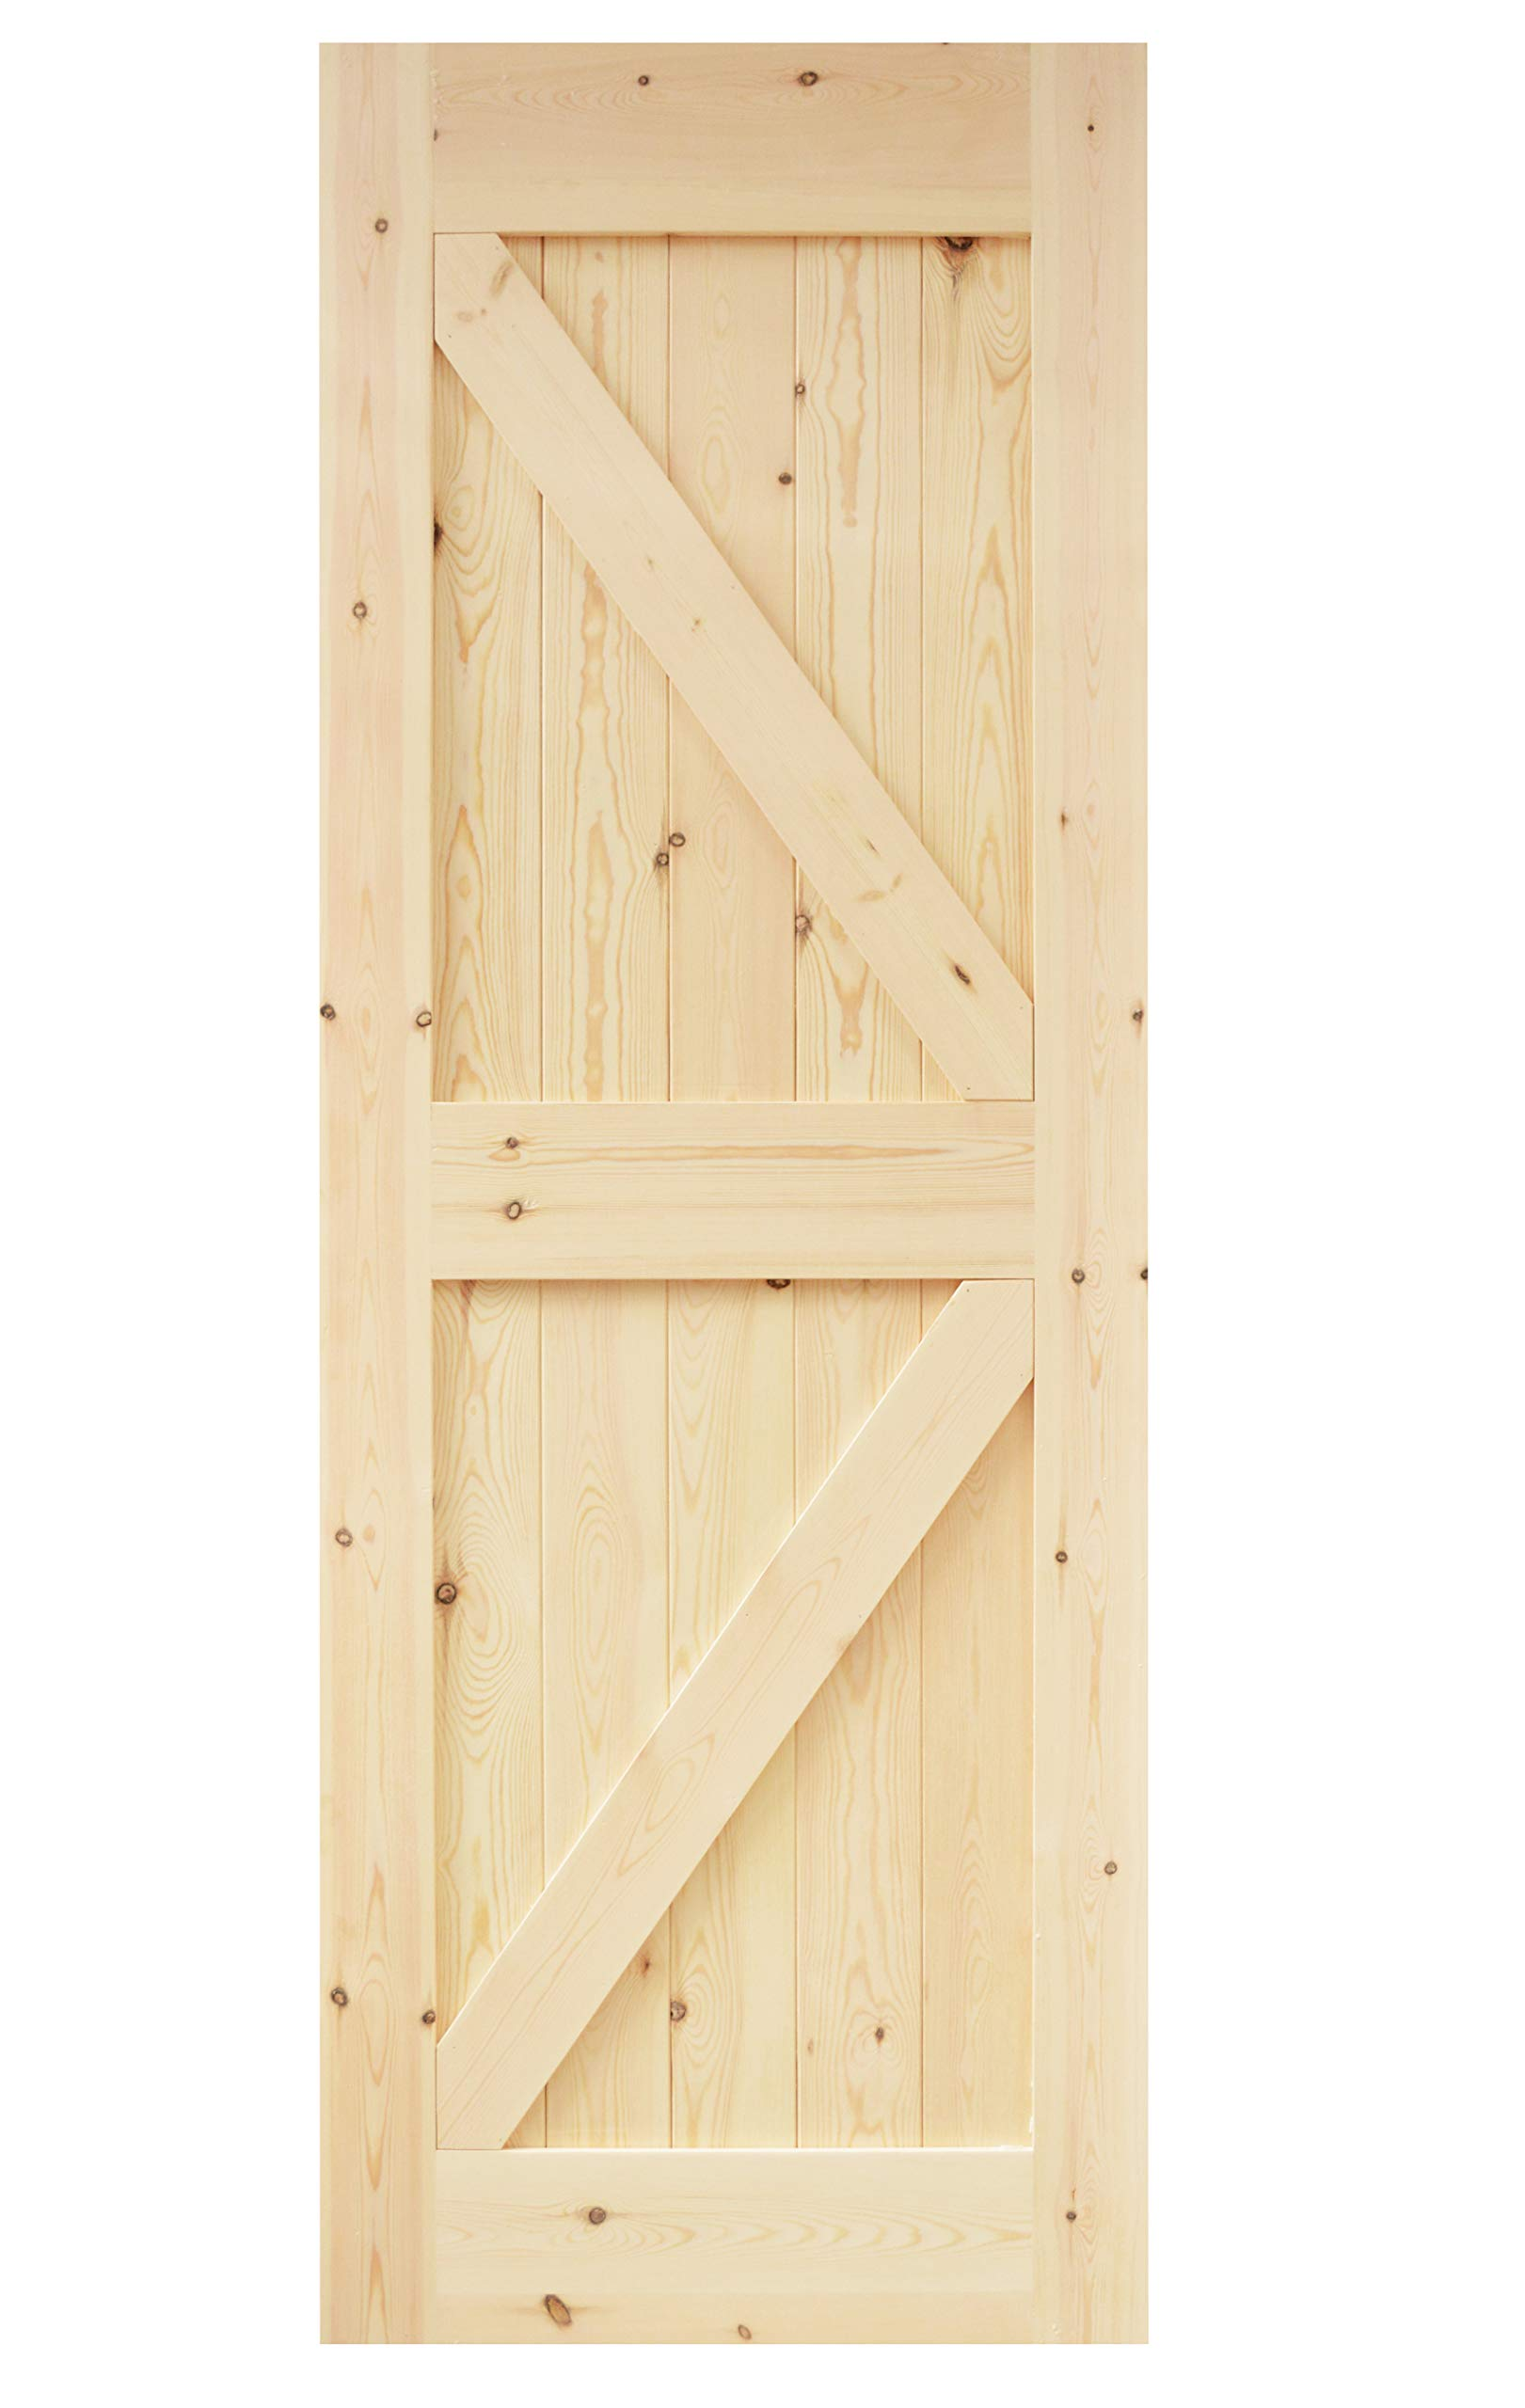 DIYHD DSX 30X84in Assembled Pine Knotty Sliding Wood Two-Side Arrow Shape Barn Door Slab (Unfinished)